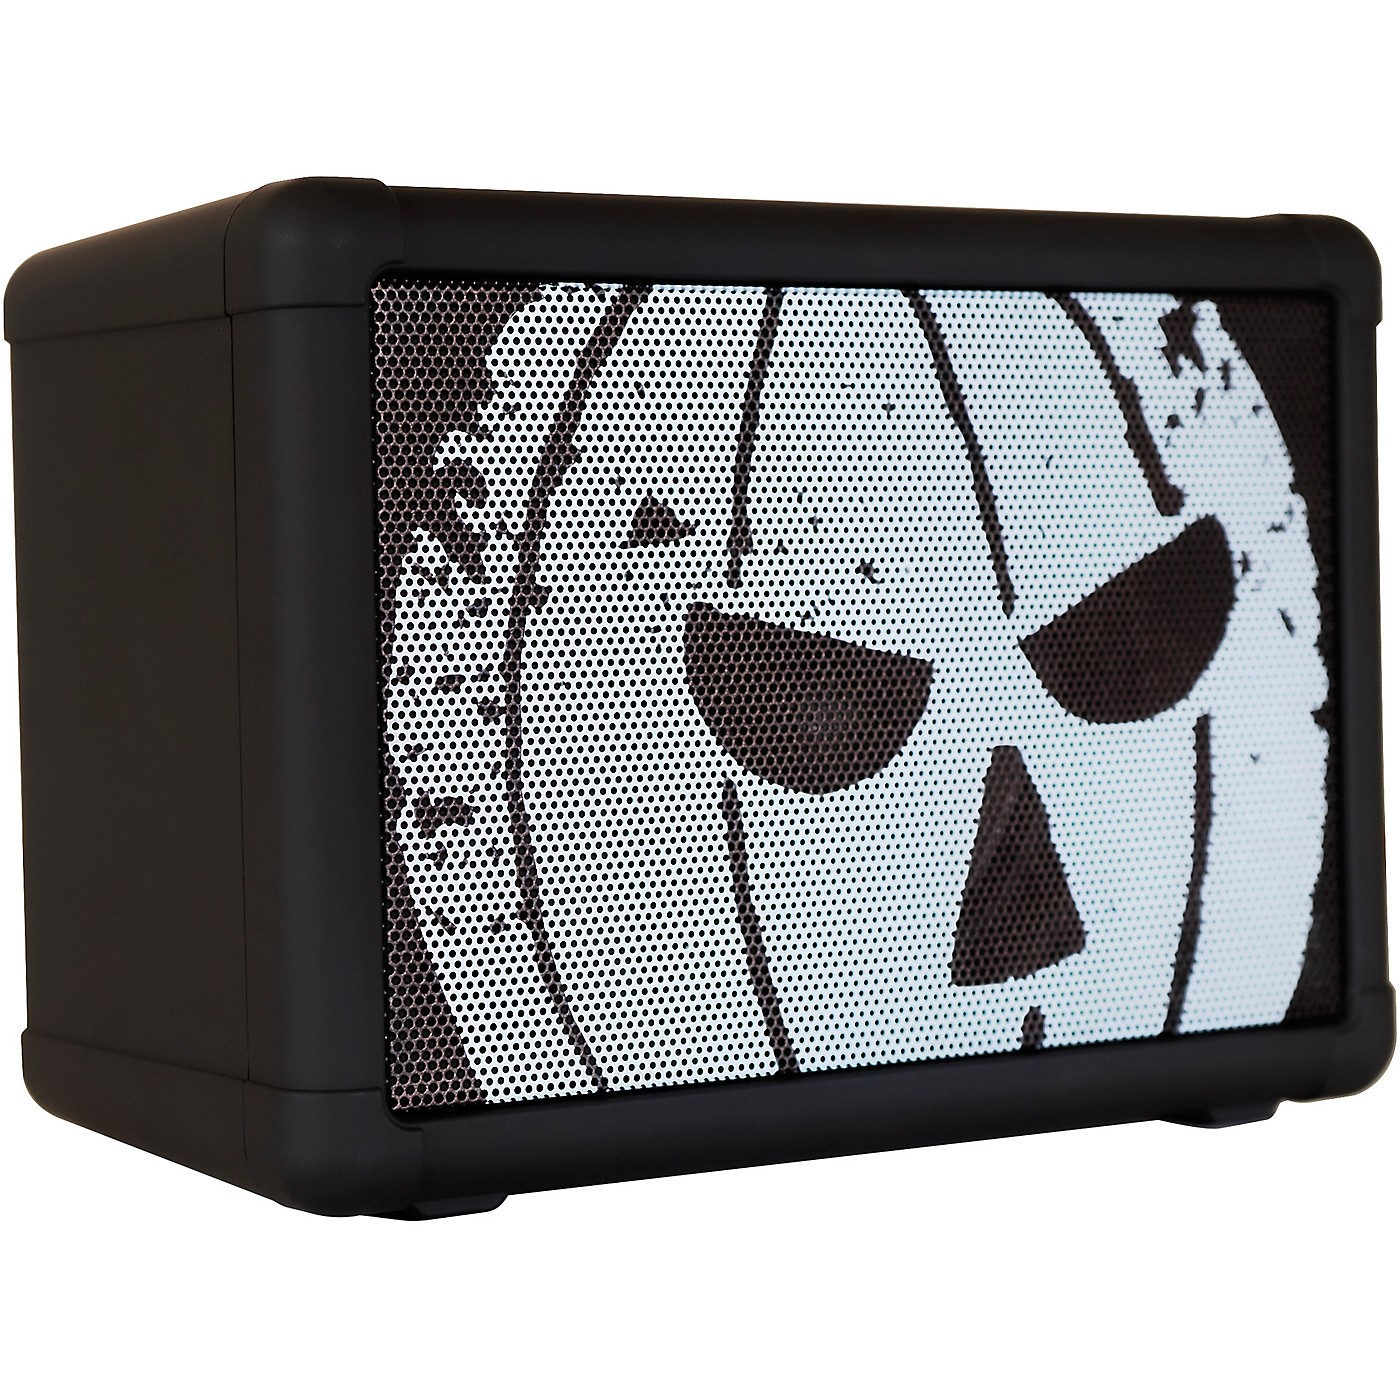 Blackstar Blackstar Helloween Fly 3 Mini Amp thumbnail